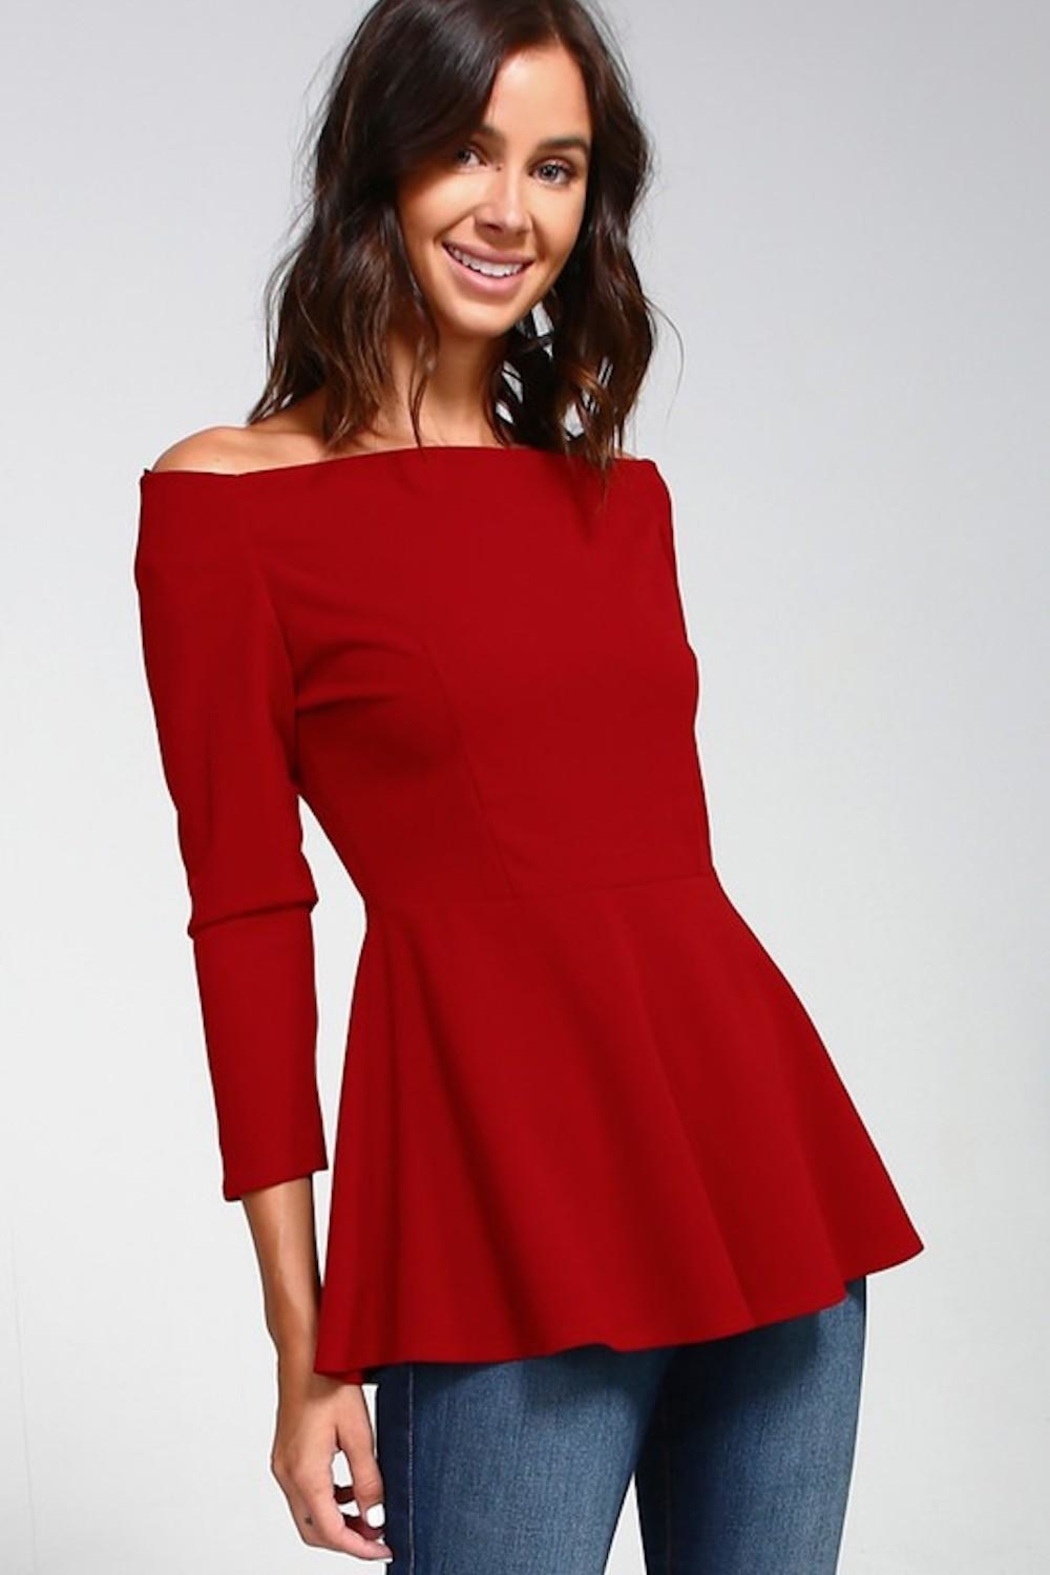 2 Hearts Love Red Blouse - Main Image